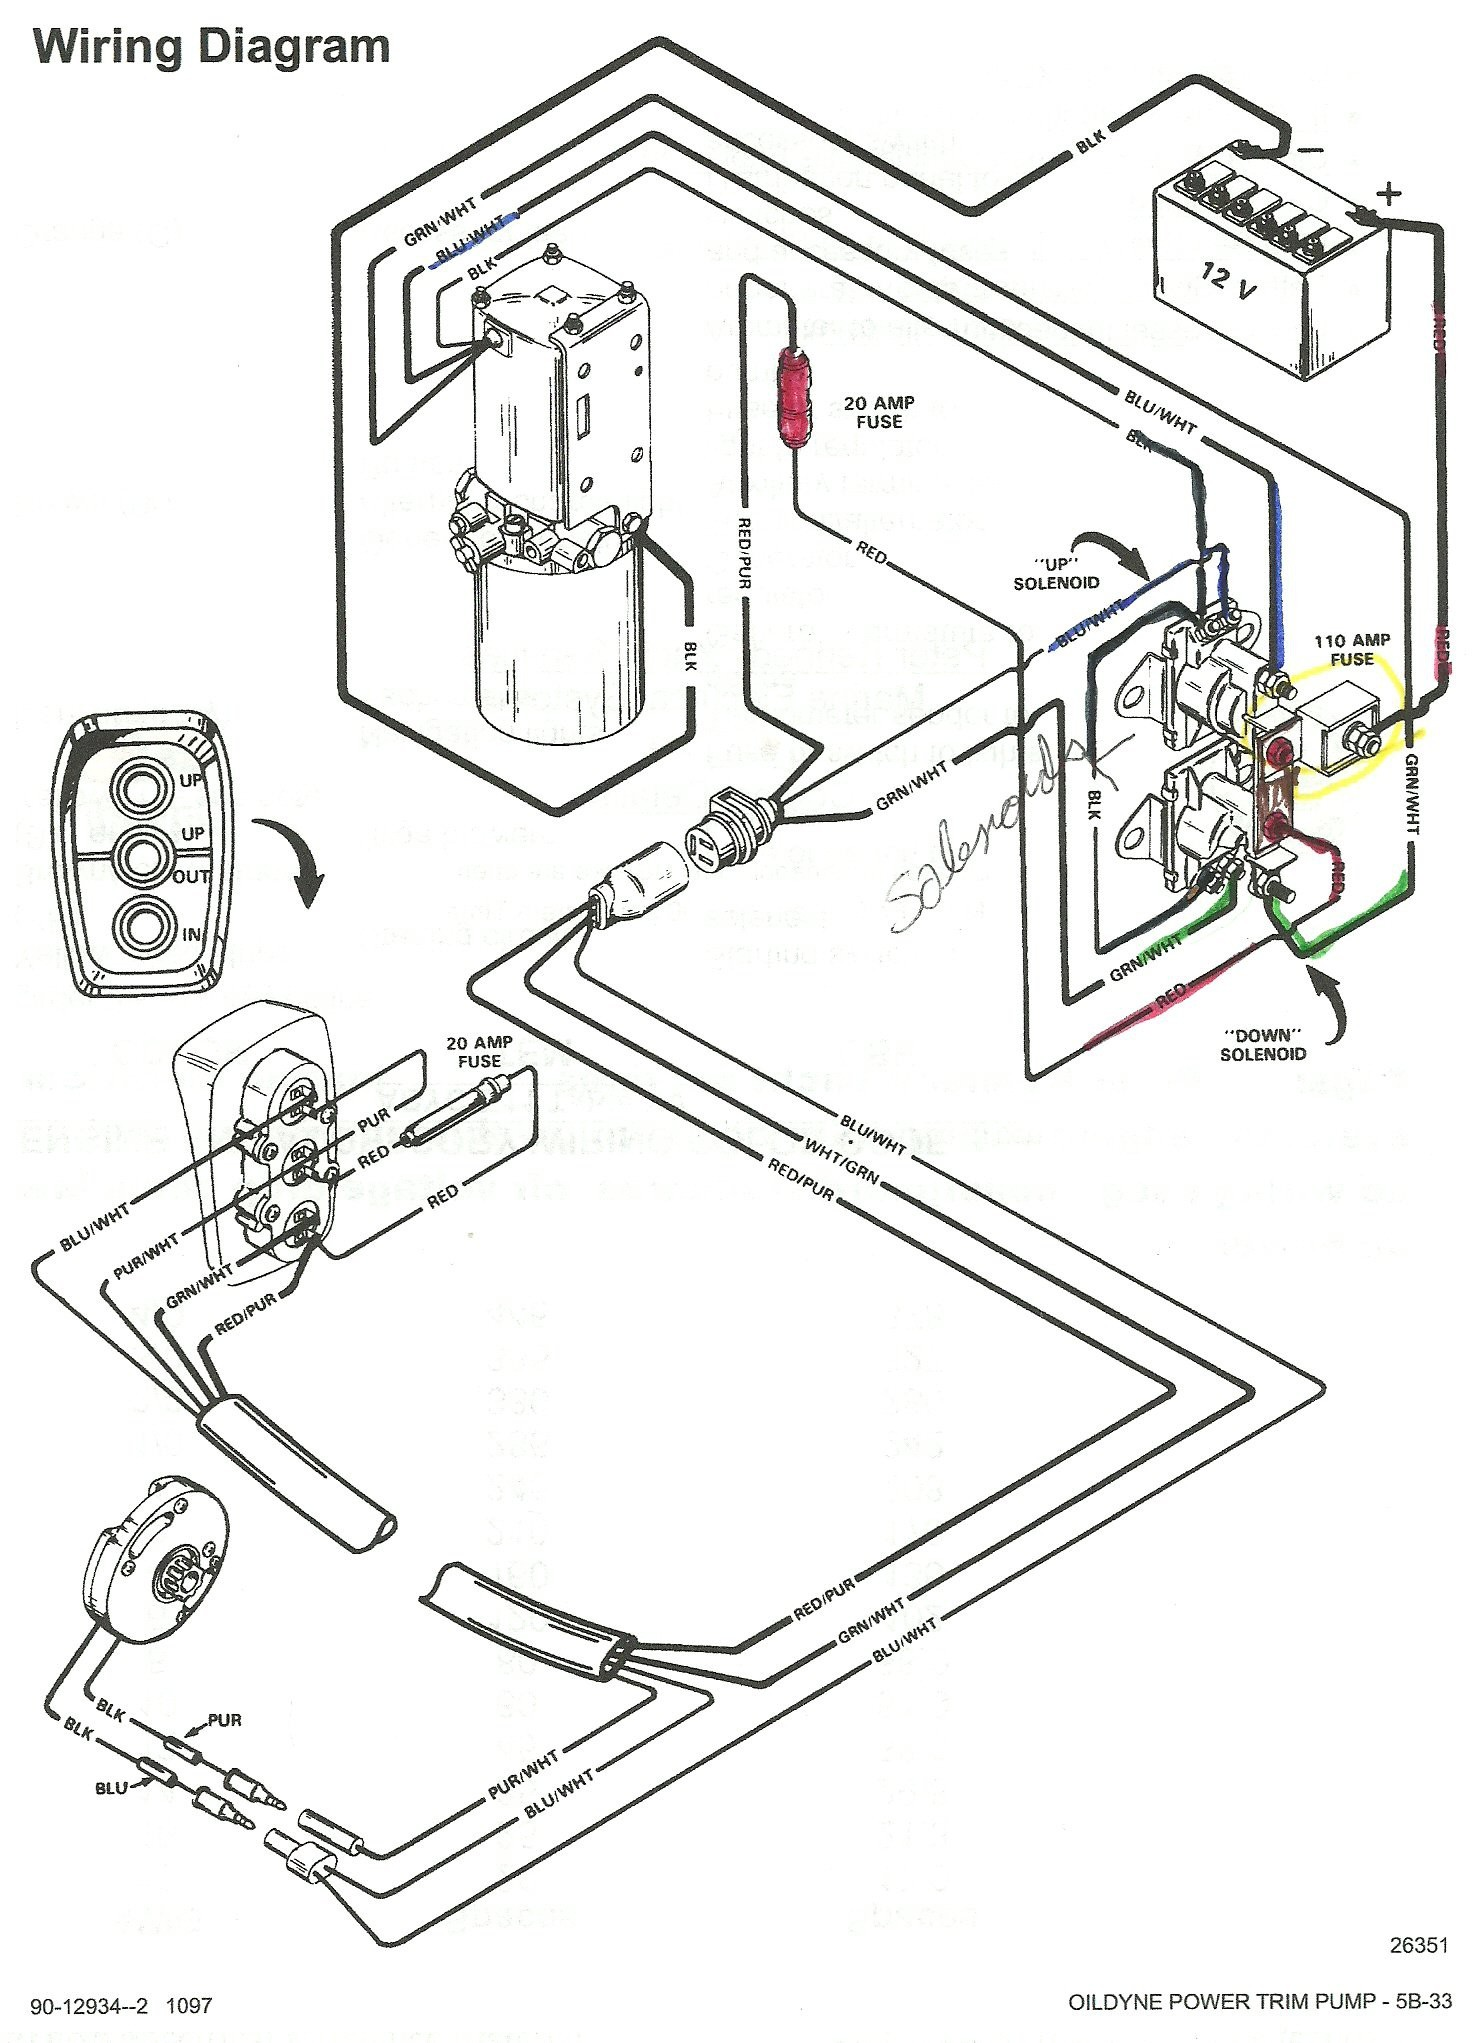 Switch Boat Diagram Wiring Lift Bbremas Auto Electrical Key West Fuse Box Related With